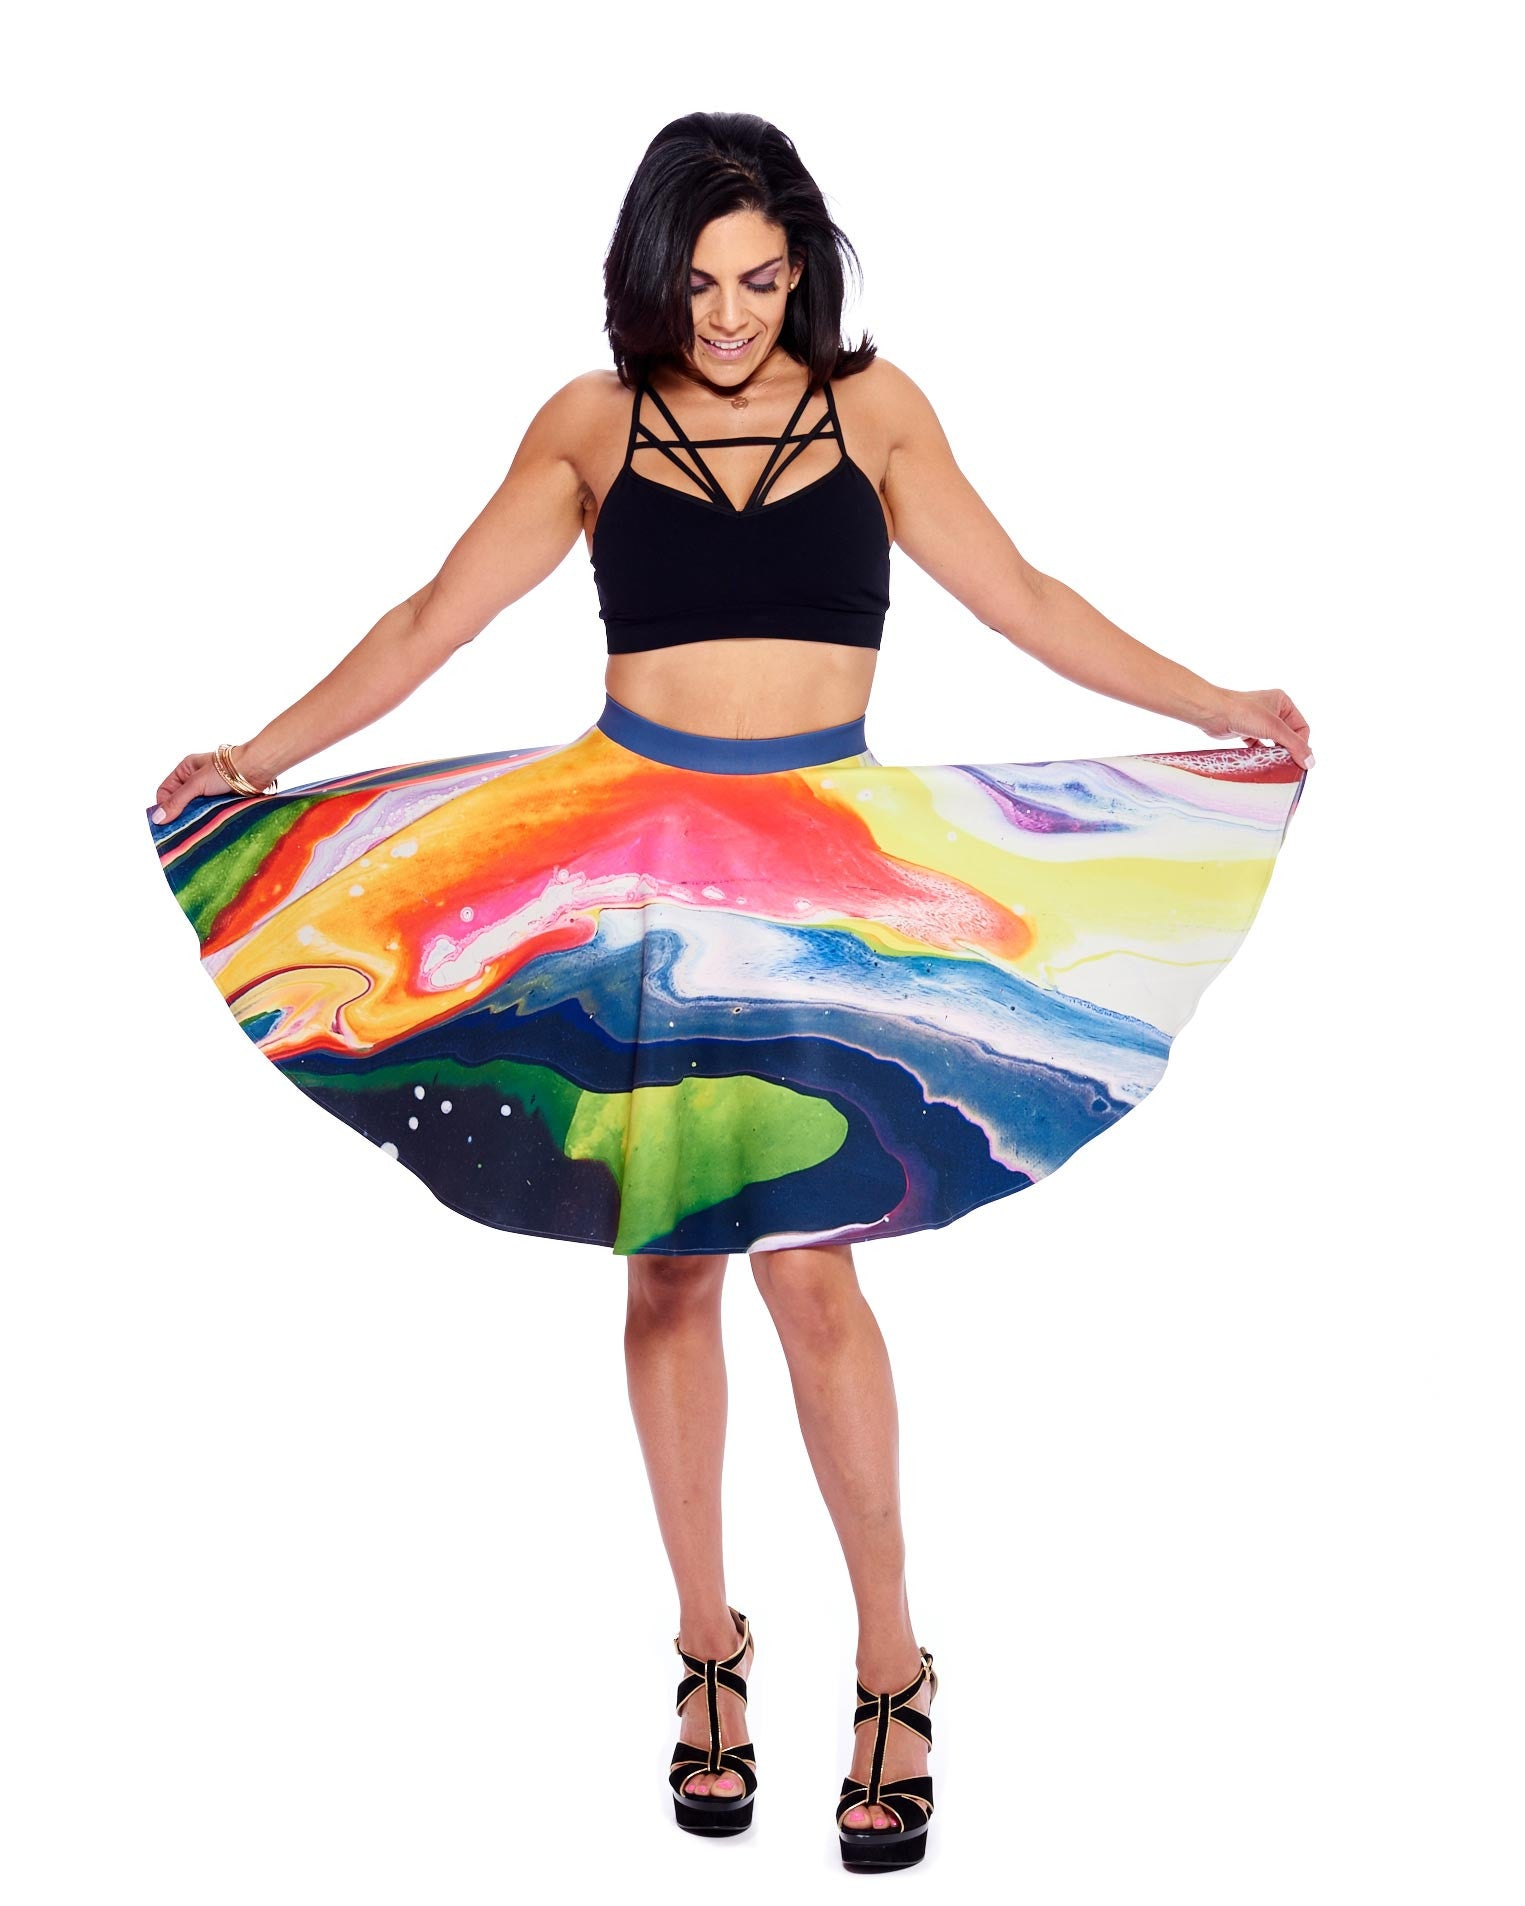 New Planet II Circle Skirt - Nuvango Gallery & Goods - 2